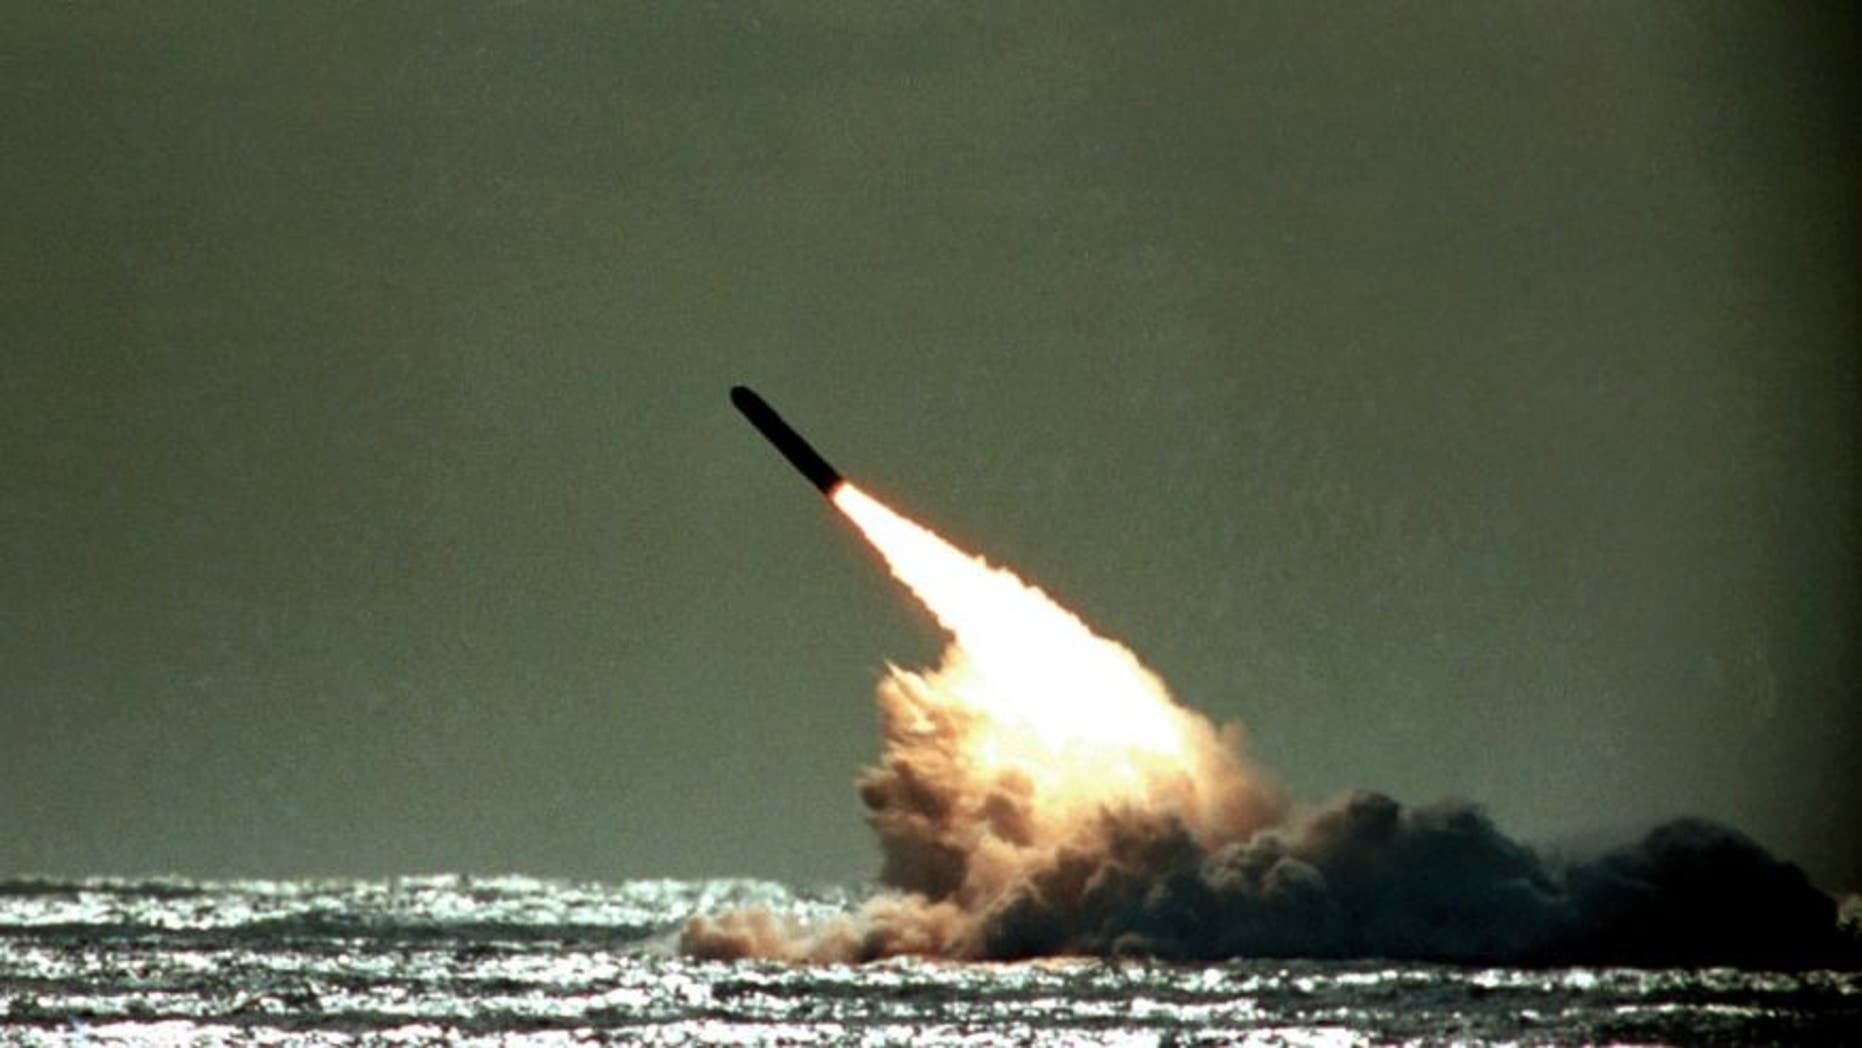 FILE 1989: A Trident II missile launched by the U.S. Navy during a performance evaluation from the submerged submarine USS Tennessee in the Atlantic Ocean off the coast of Cape Canaveral in Titusville, Fla., USA